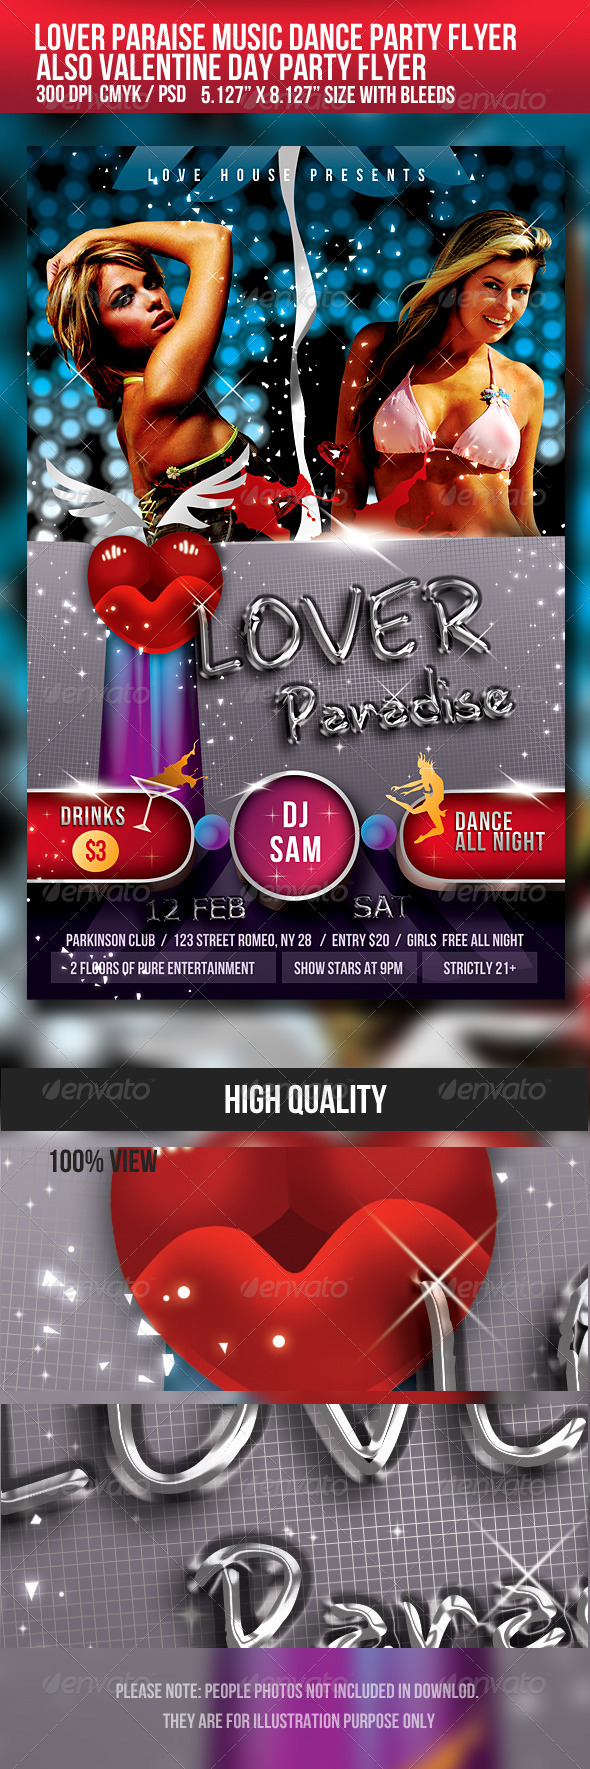 Lover Paradise/Valentine Music Dance Party Flyer - Clubs & Parties Events